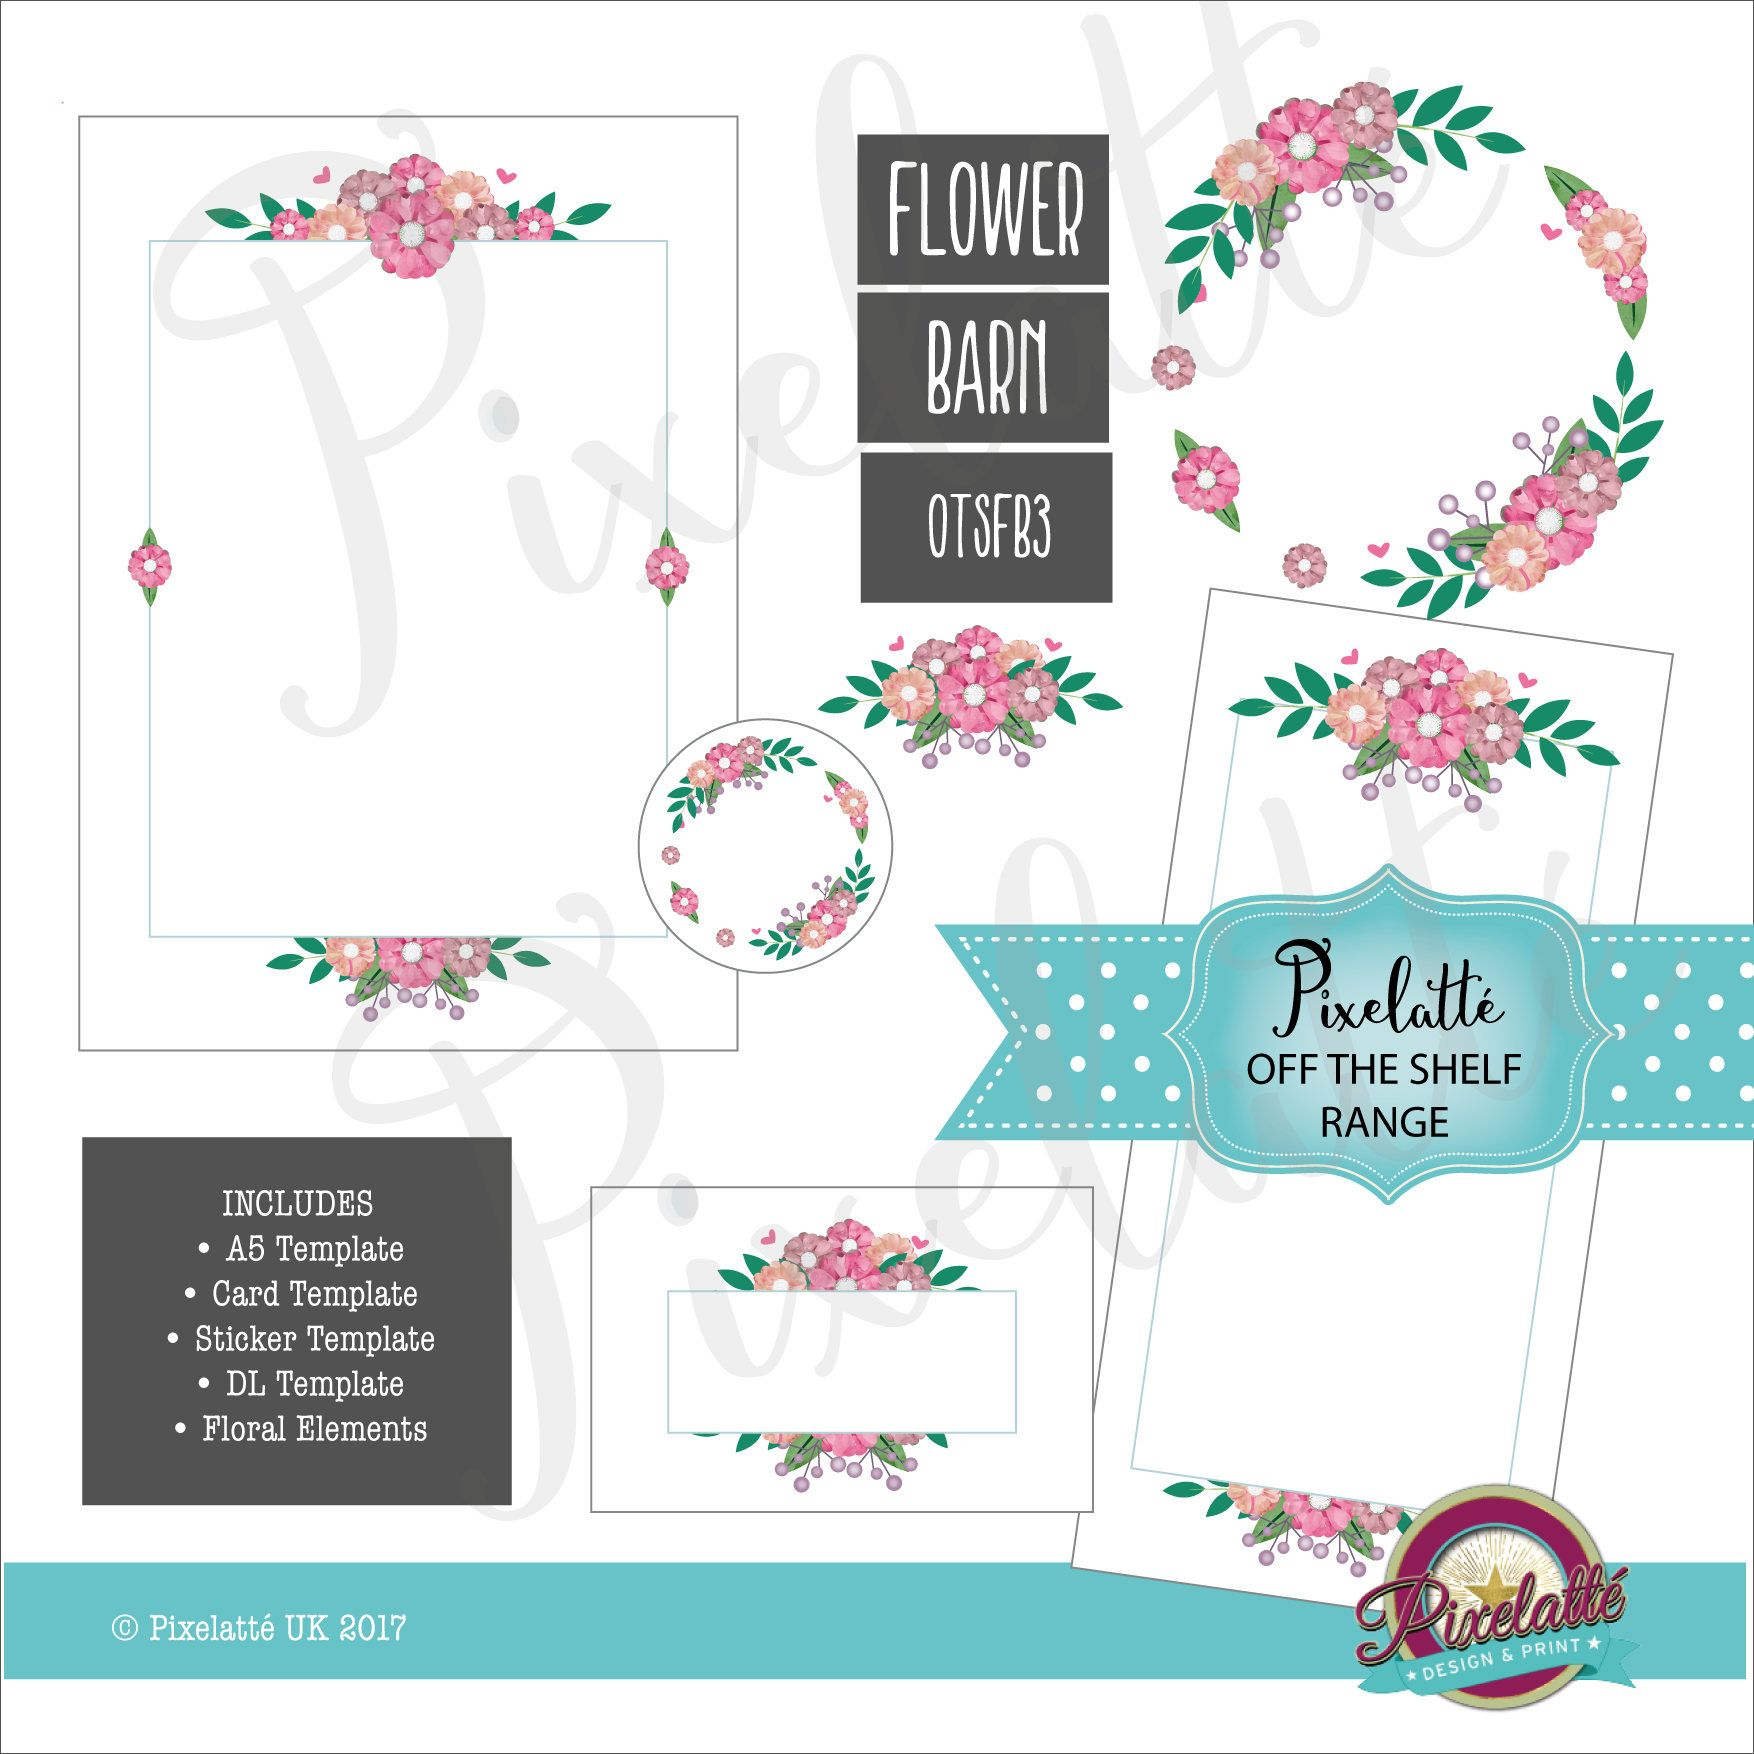 Floral Border Digital Download Invitation A5 DL Price List